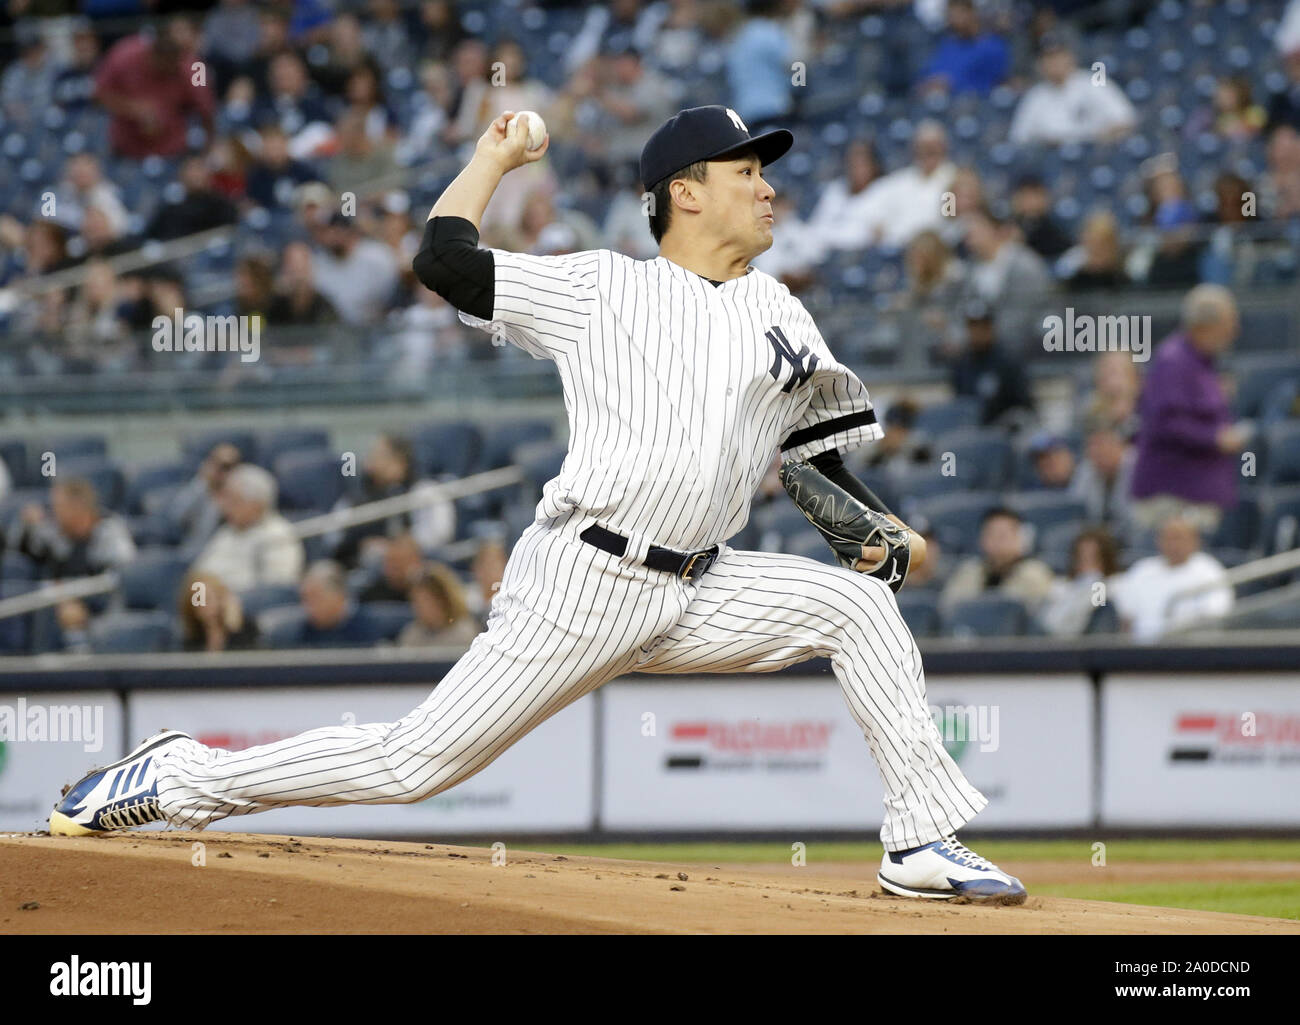 Bronx, United States. 19th Sep, 2019. New York Yankees starting pitcher Masahiro Tanaka throws a pitch in the first inning against the Los Angeles Angels at Yankee Stadium on Thursday, September 19, 2019 in New York City. Photo by John Angelillo/UPI Credit: UPI/Alamy Live News Stock Photo